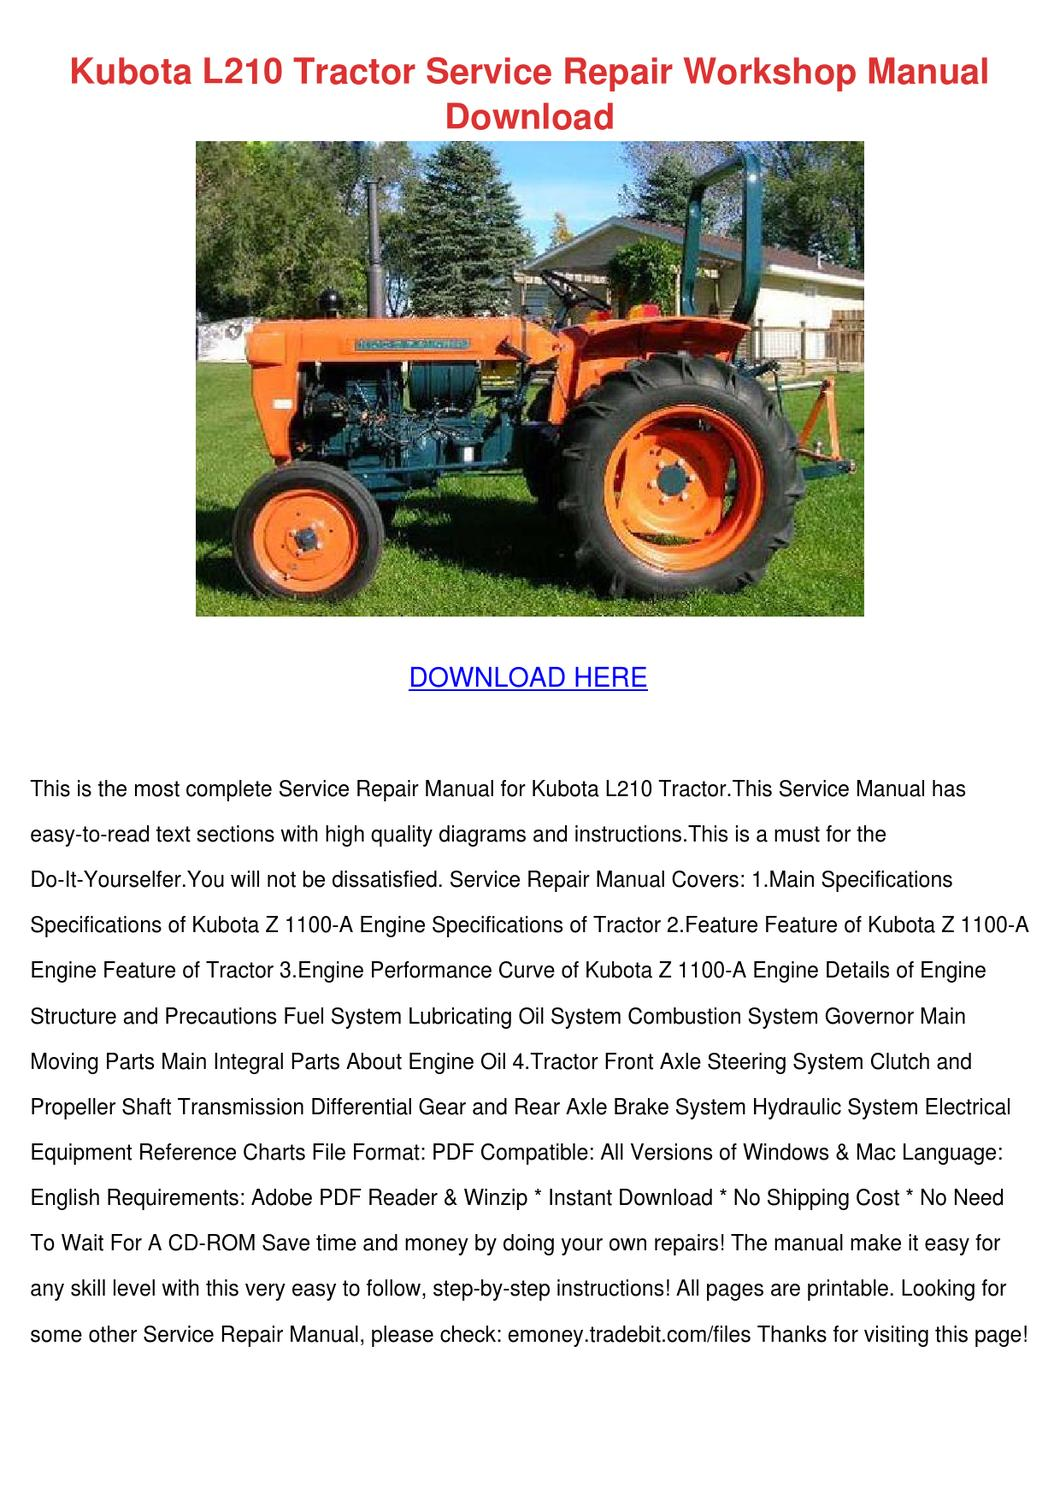 Kubota L210 Tractor Service Repair Workshop M by